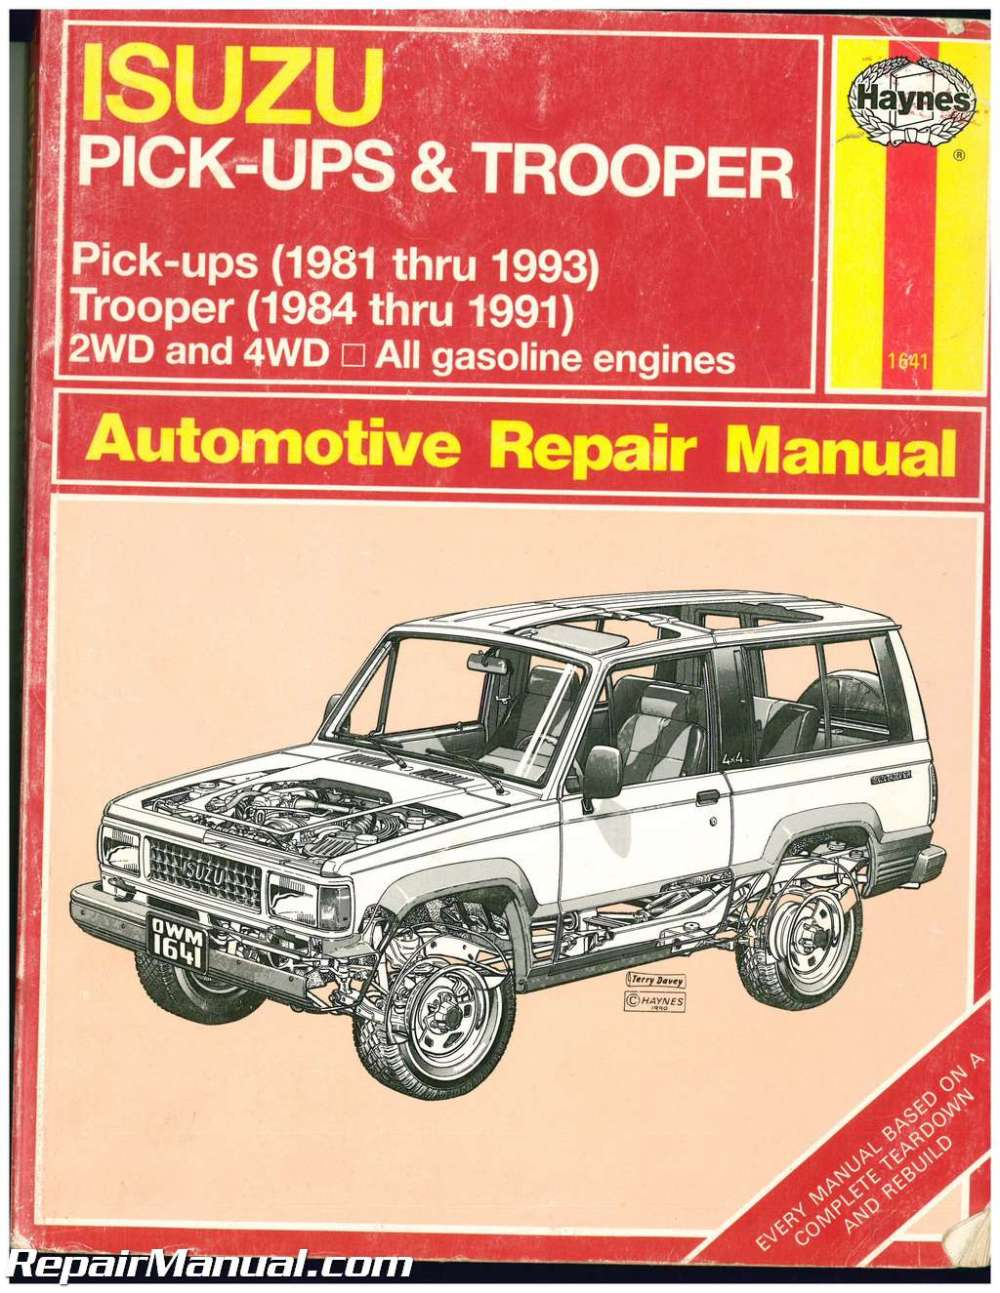 1993 isuzu rodeo repair manual